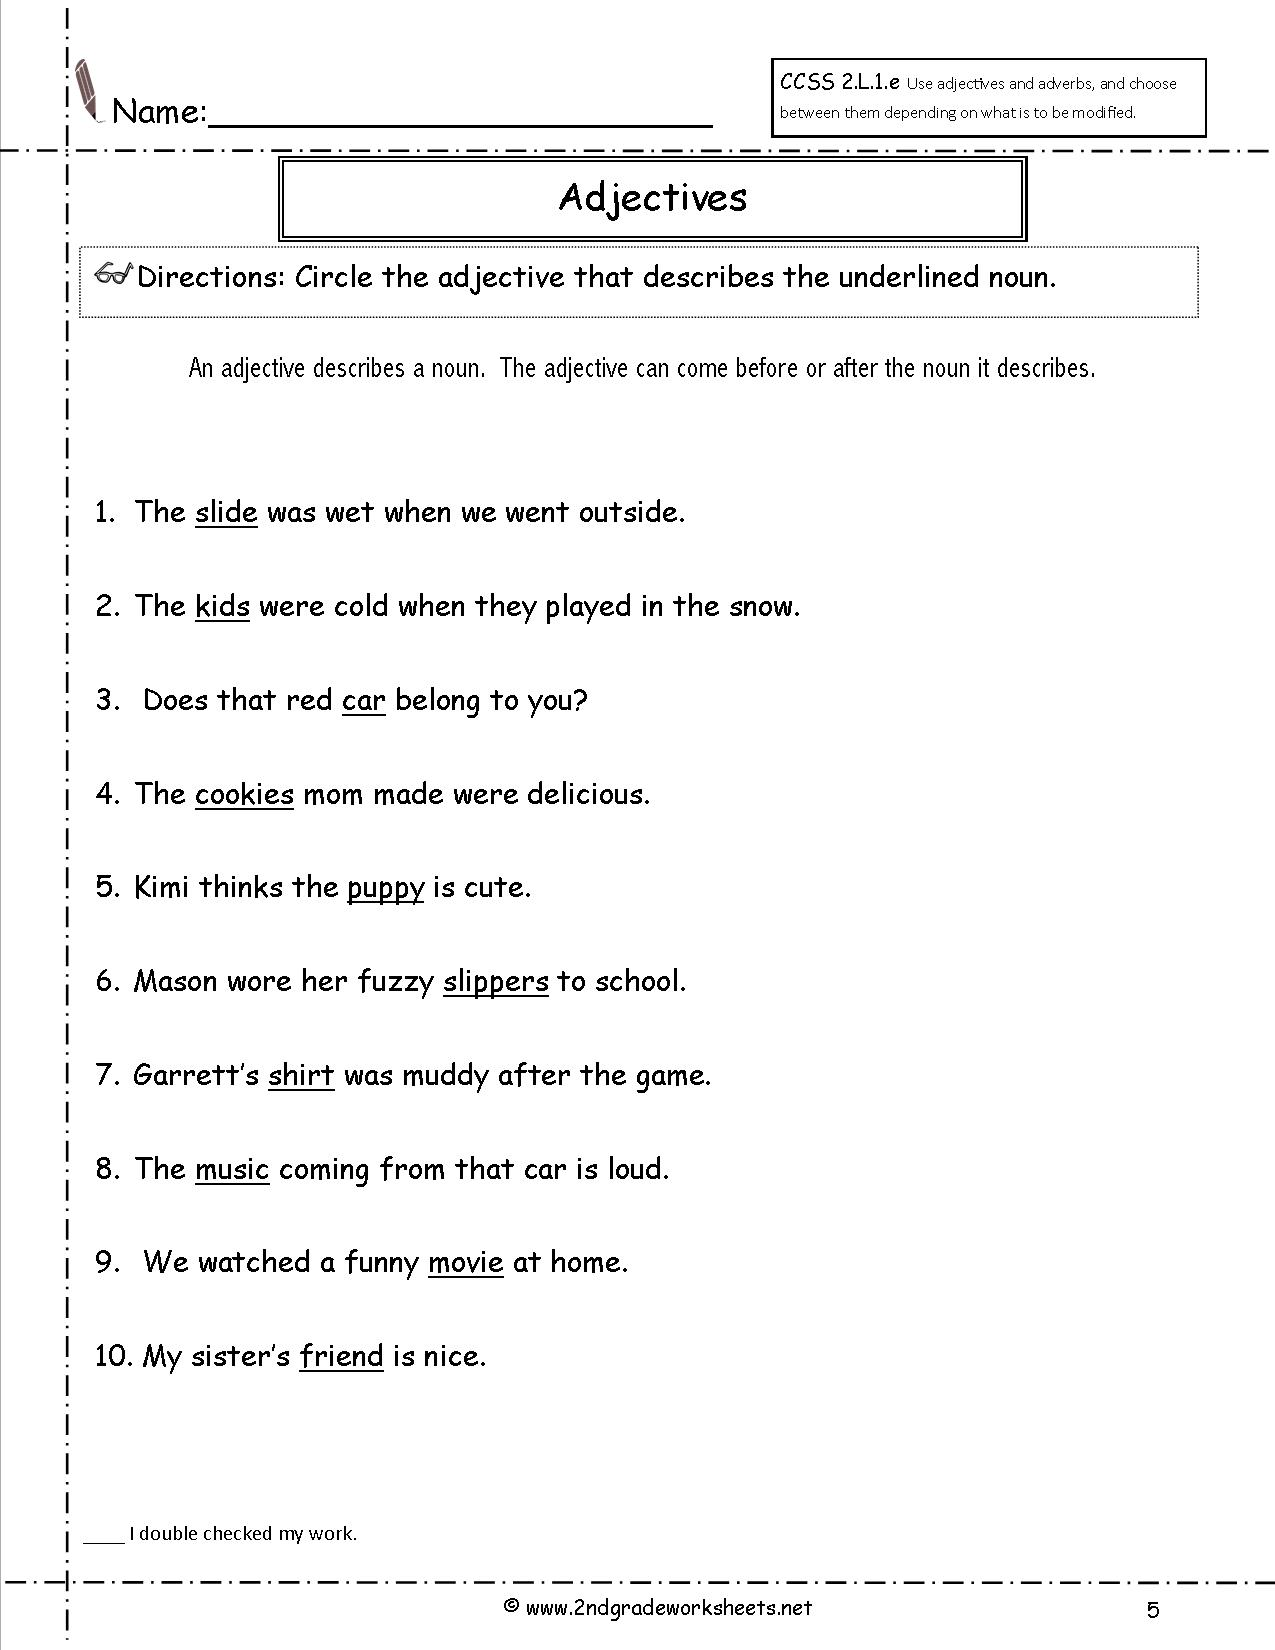 15 Best Images Of Nouns And Adjectives Worksheets